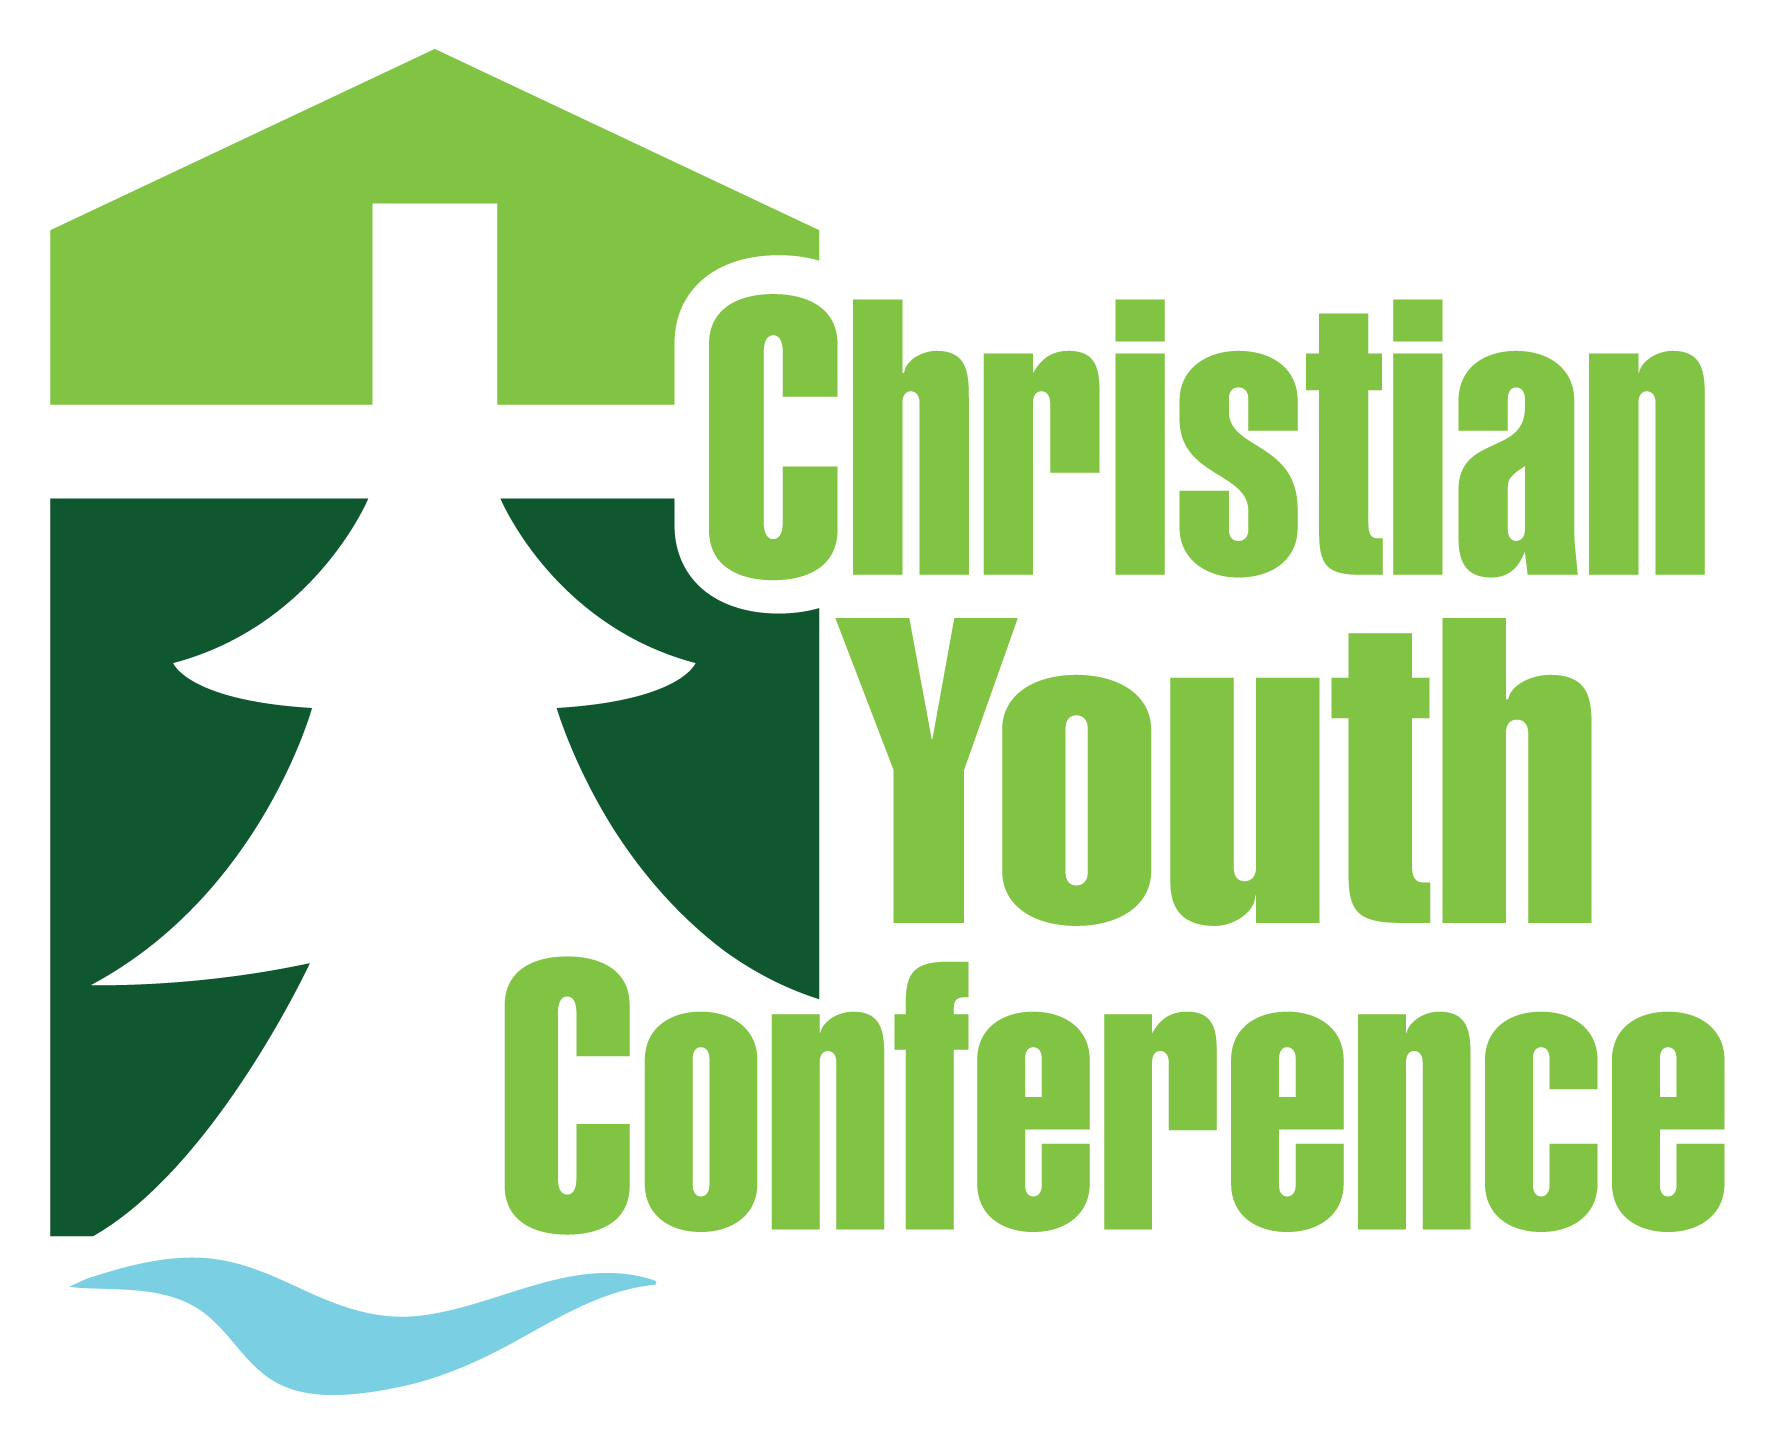 Christian Youth Conference